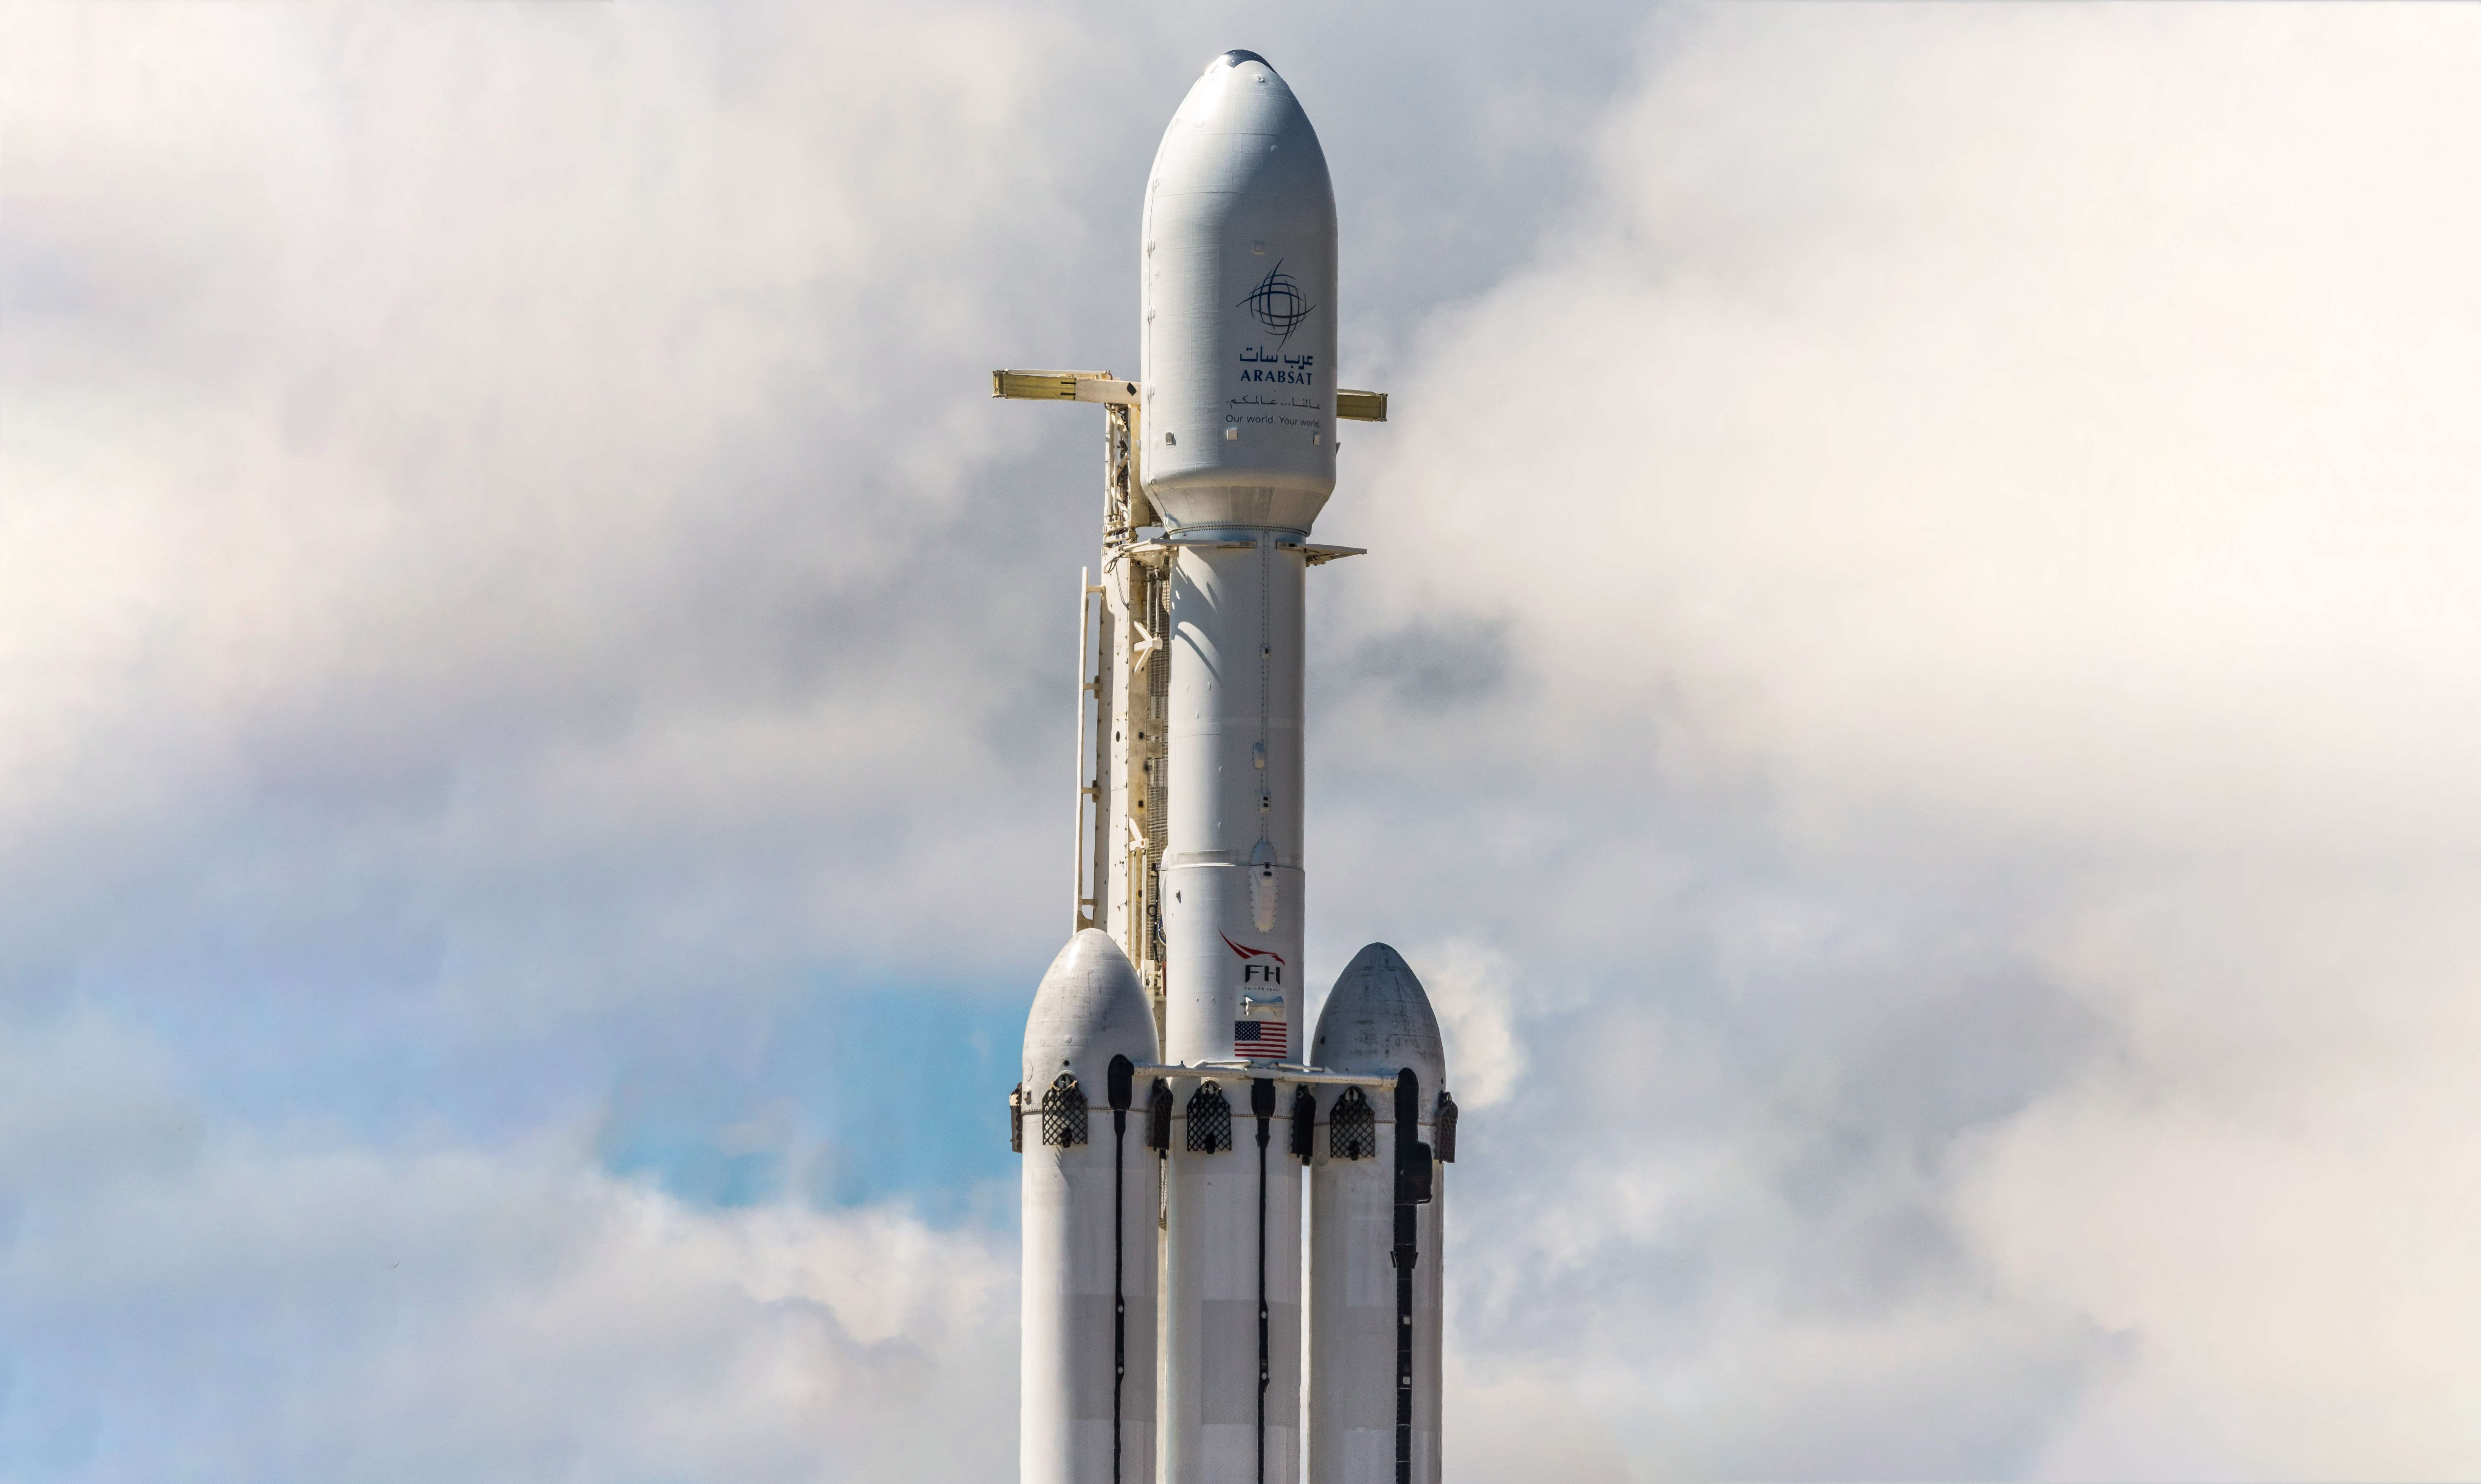 SpaceX's next commercial Falcon Heavy launch to carry Astranis rideshare satellite